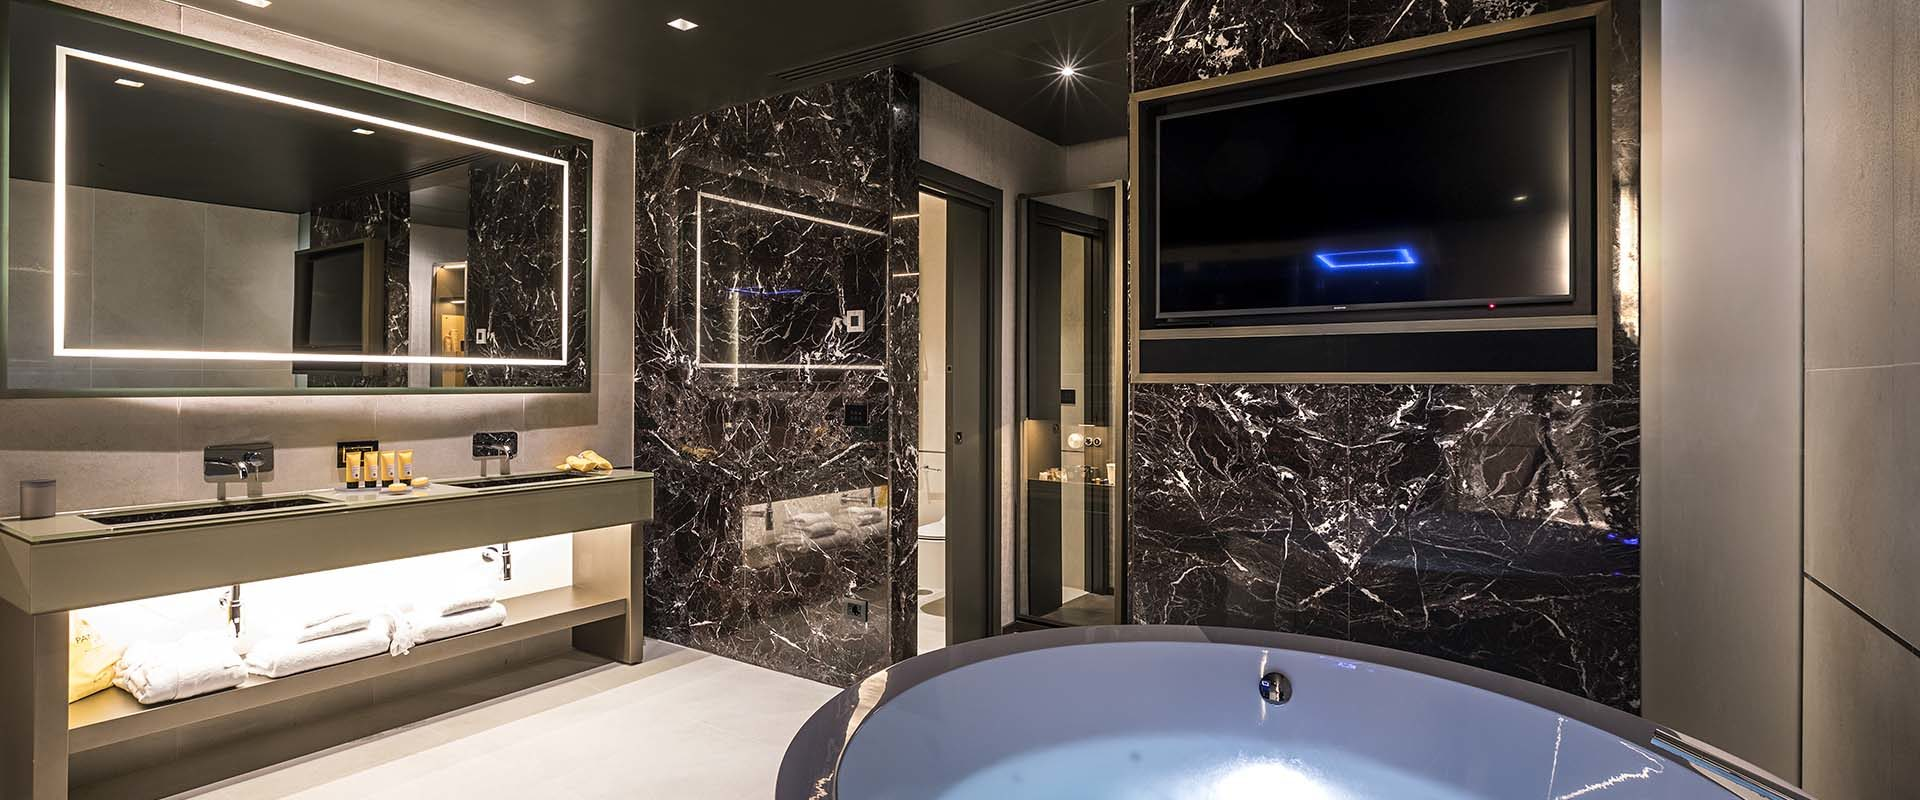 Private Jacuzzi in the Spa Suite at the Pantheon Icon Hotel